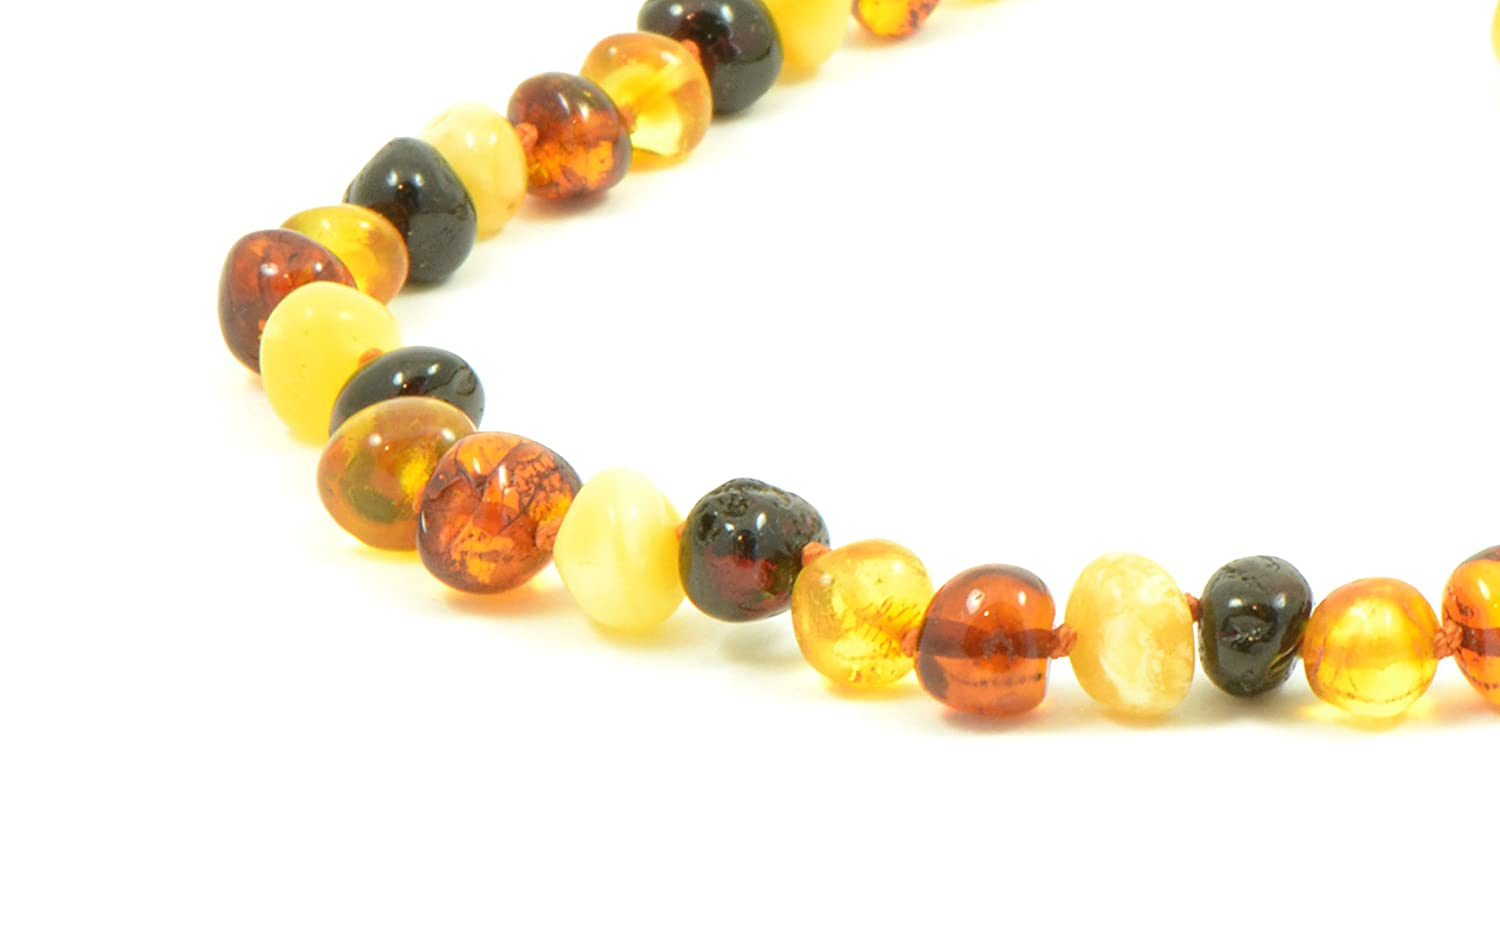 Baltic Amber Teething Necklace for Baby 36cm Amber Jewelry Unisex , Rainbow TheNaturalAmber B23-T1 14 inch Hand-Made from Certified Genuine Baltic Amber Beads